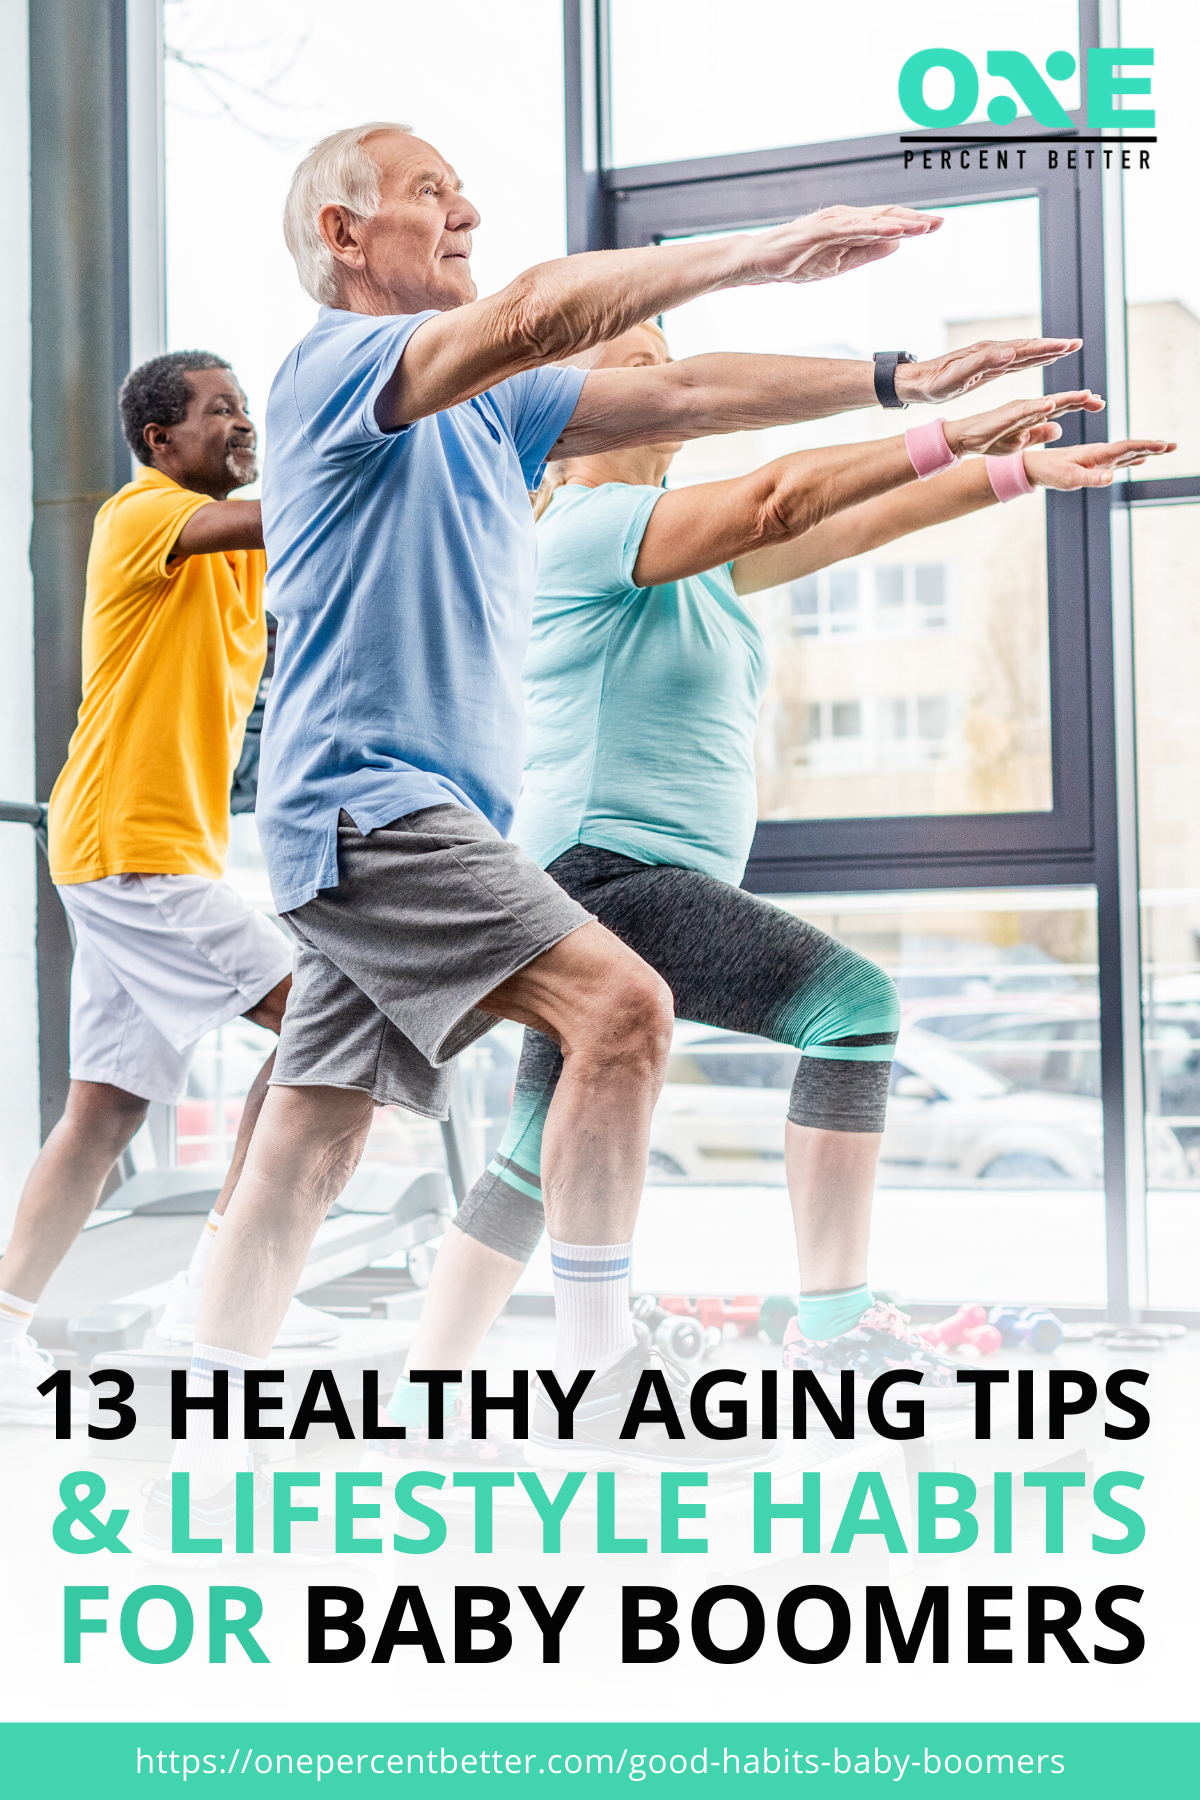 13 Good Lifestyle Habits Baby Boomers Should Adopt https://onepercentbetter.com/good-habits-baby-boomers/